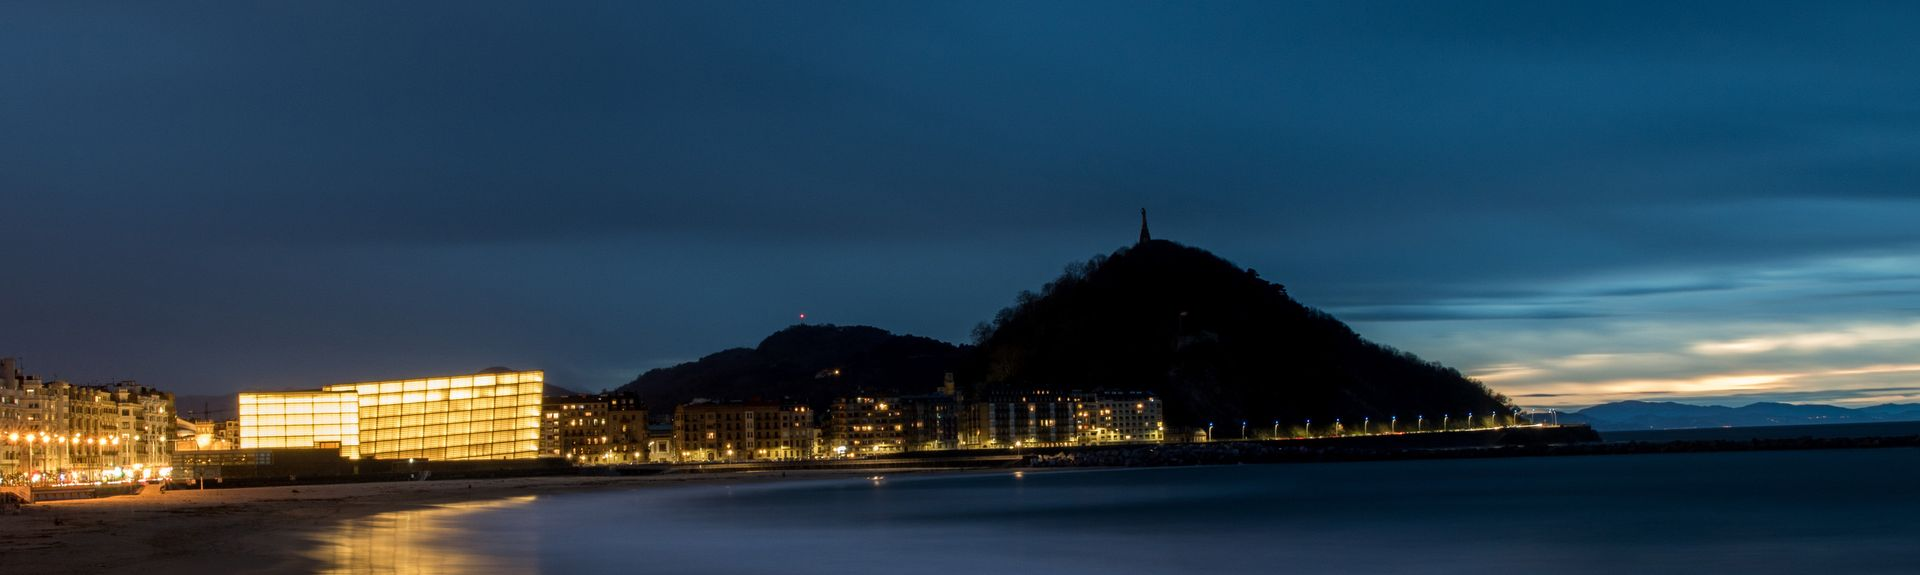 Zurriola Beach, San Sebastian, Spain